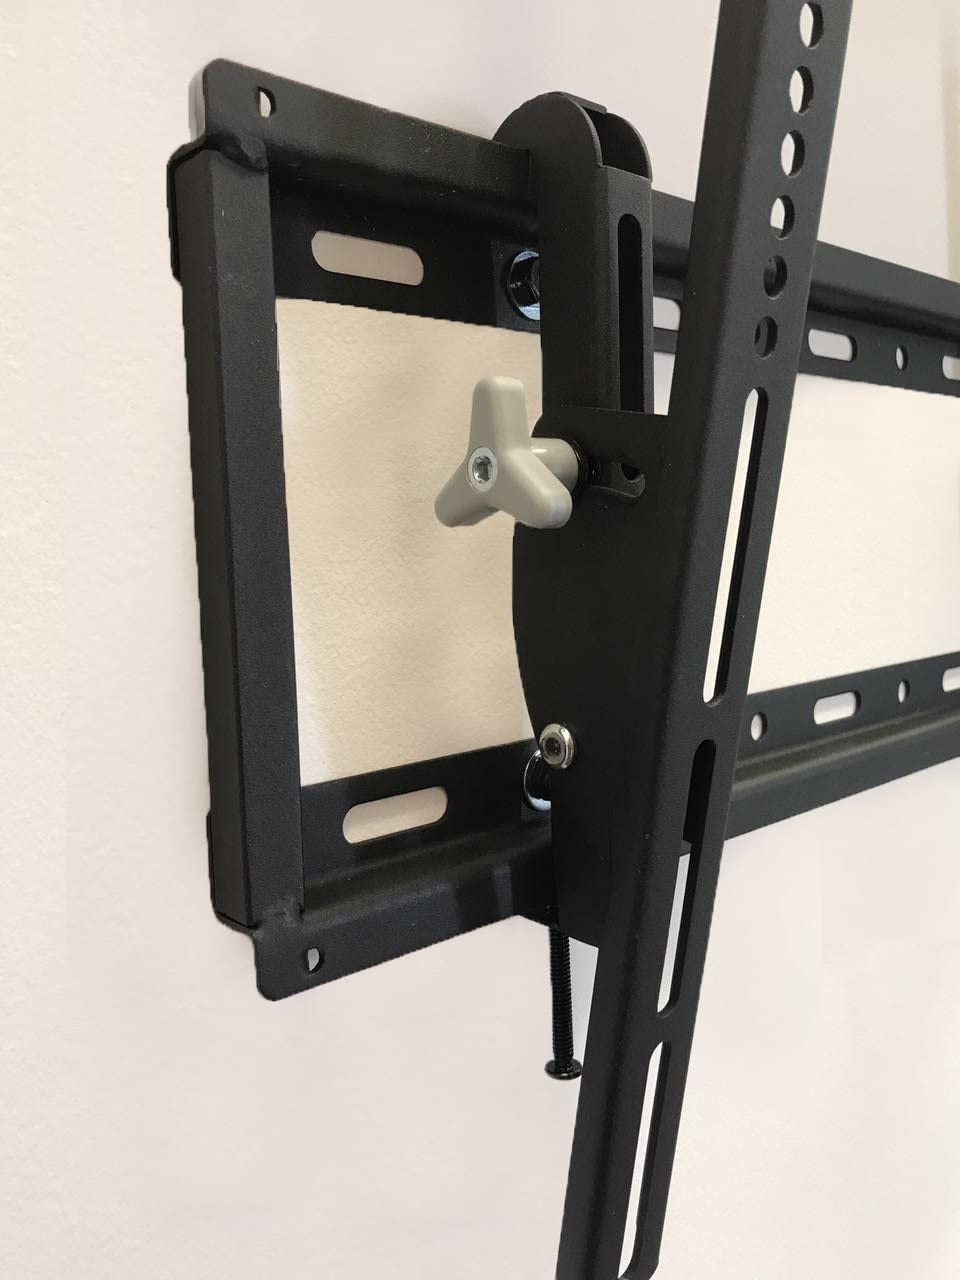 AXXIS MEDIUM TV MOUNT - TILTING Low Profile TV Wall Mount Bracket for 32-55 inch TVs - Up to 15 Degrees of Tilt for LED, LCD, OLED & Plasma Flat Screen TVs with VESA patterns to 400 x 400